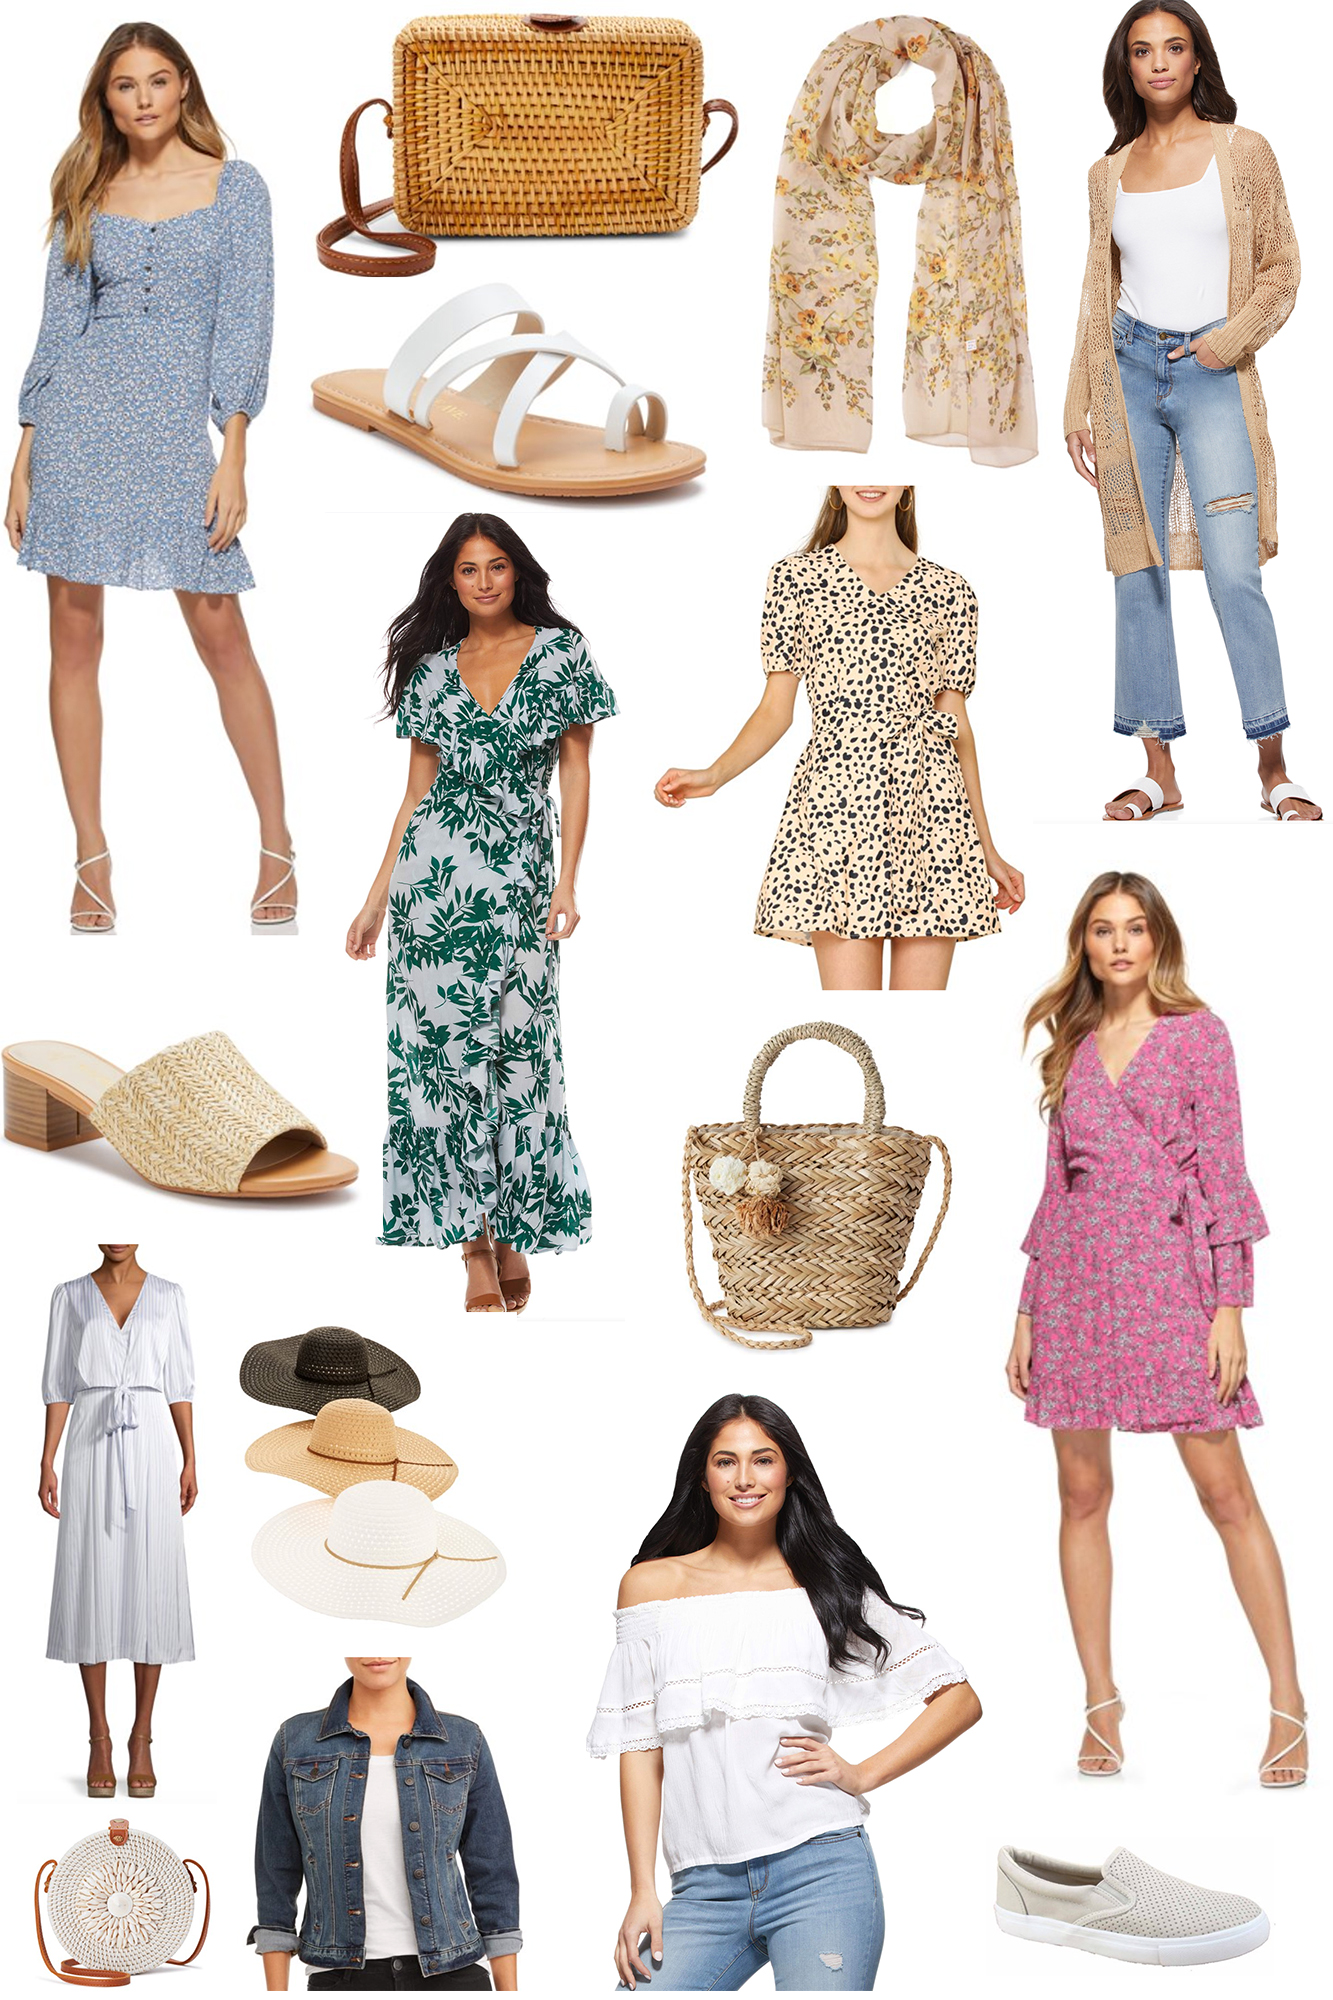 Spring to Summer Transitional Fashion Ideas - Affordable yet stylish outfit ideas for Summer 2020. Comfort is key & cute accessories